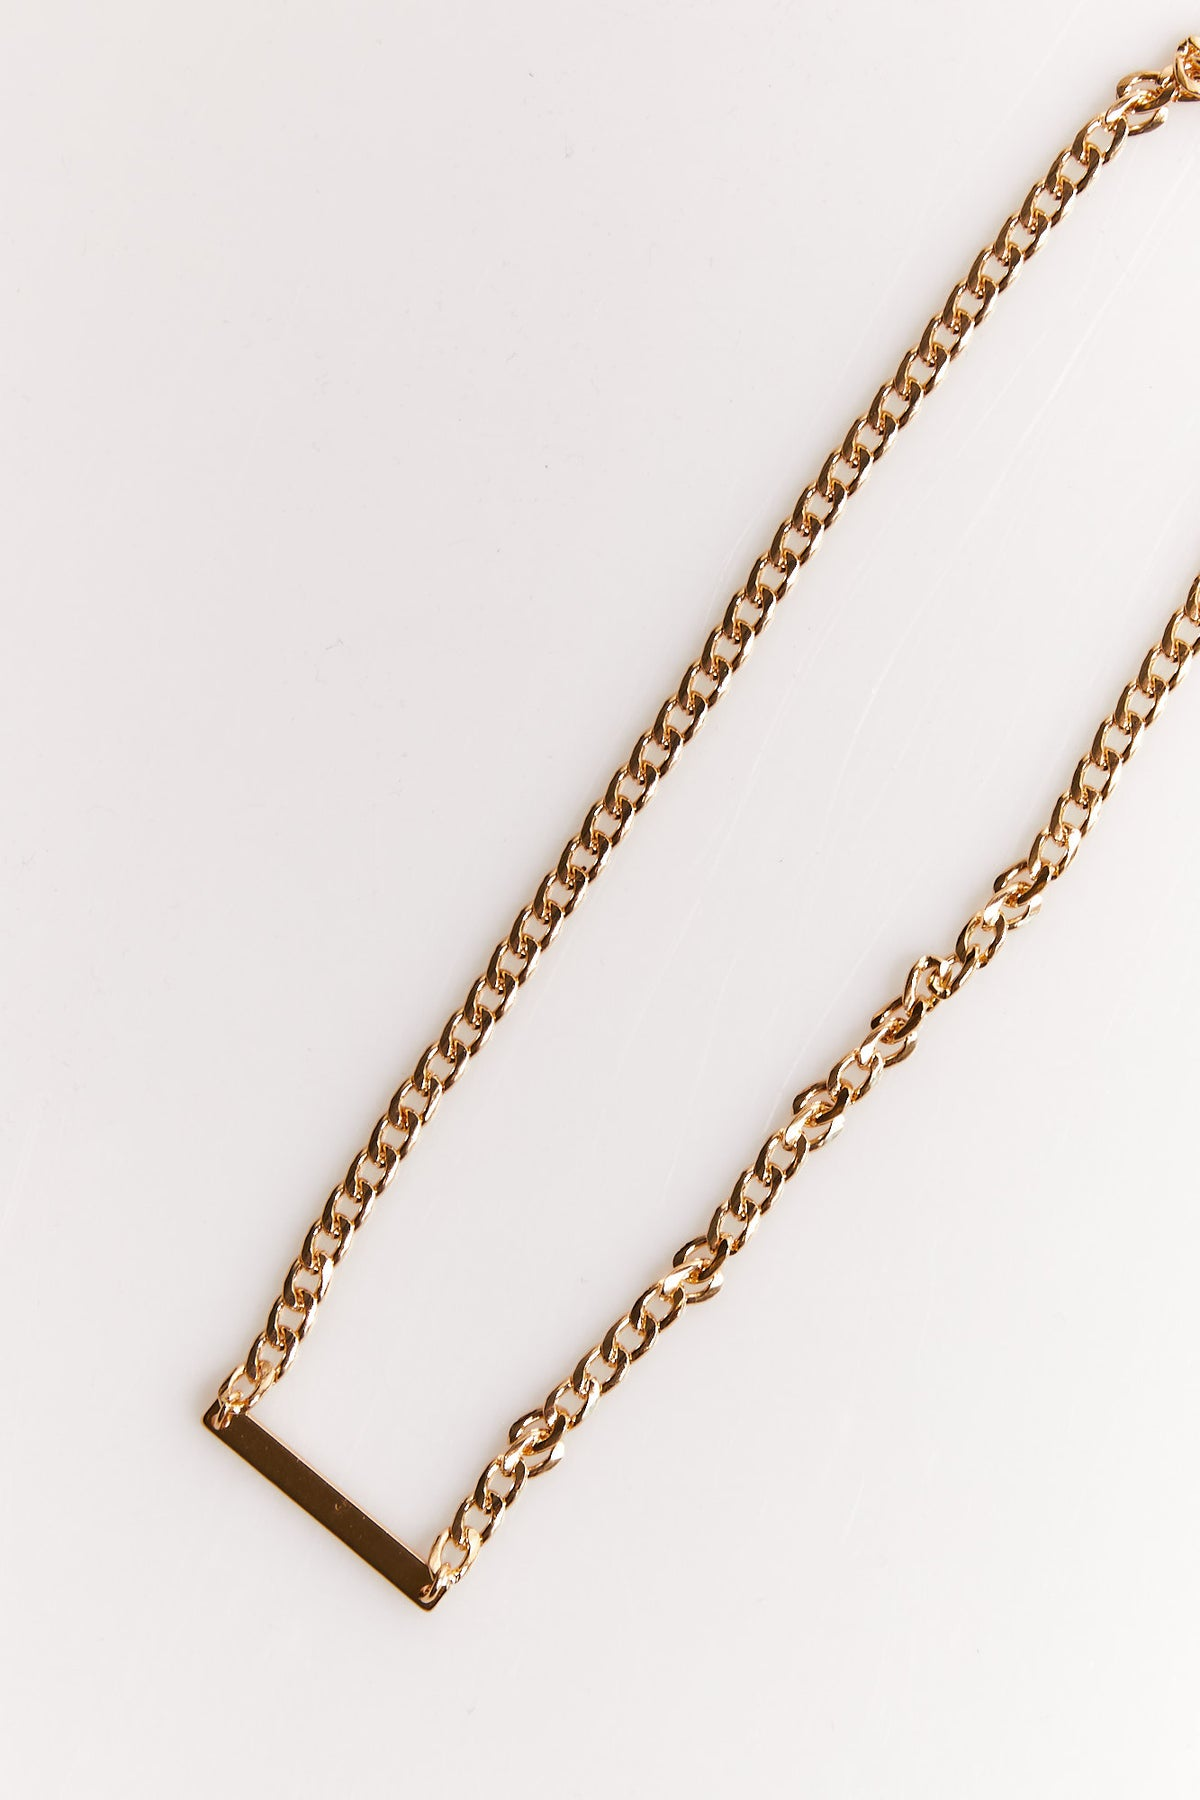 NTH Chain Necklace Gold